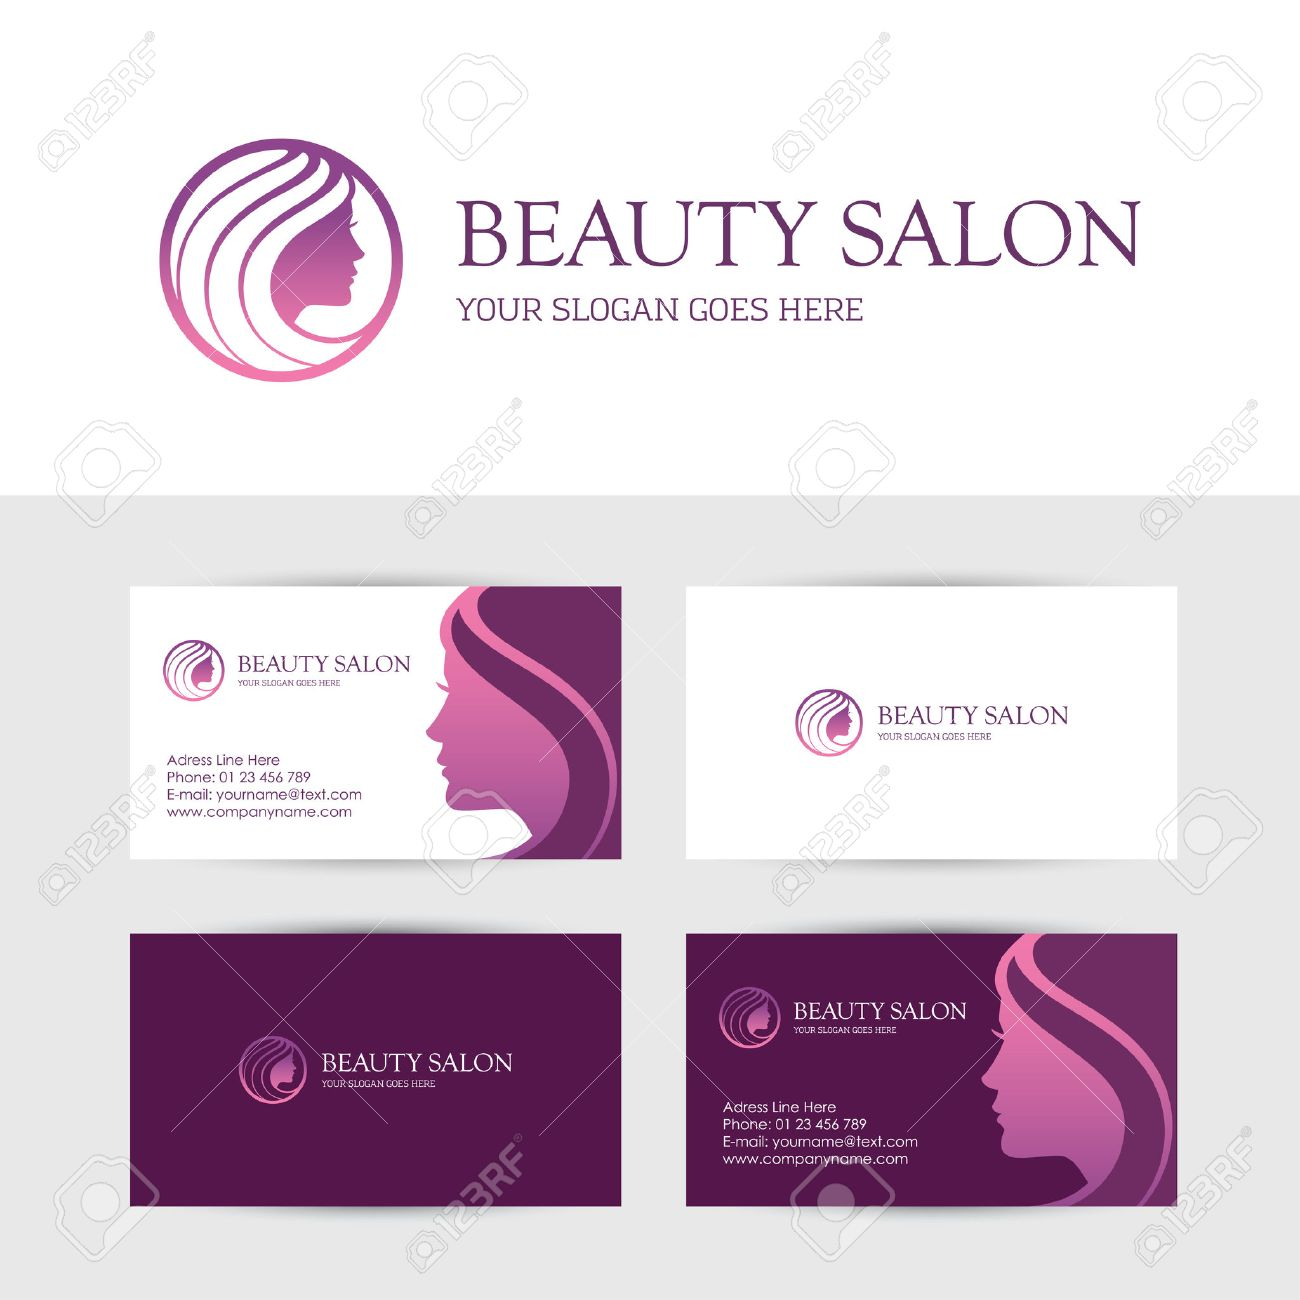 Business Card Design Template For Beauty Or Hair Salon, Spa ...